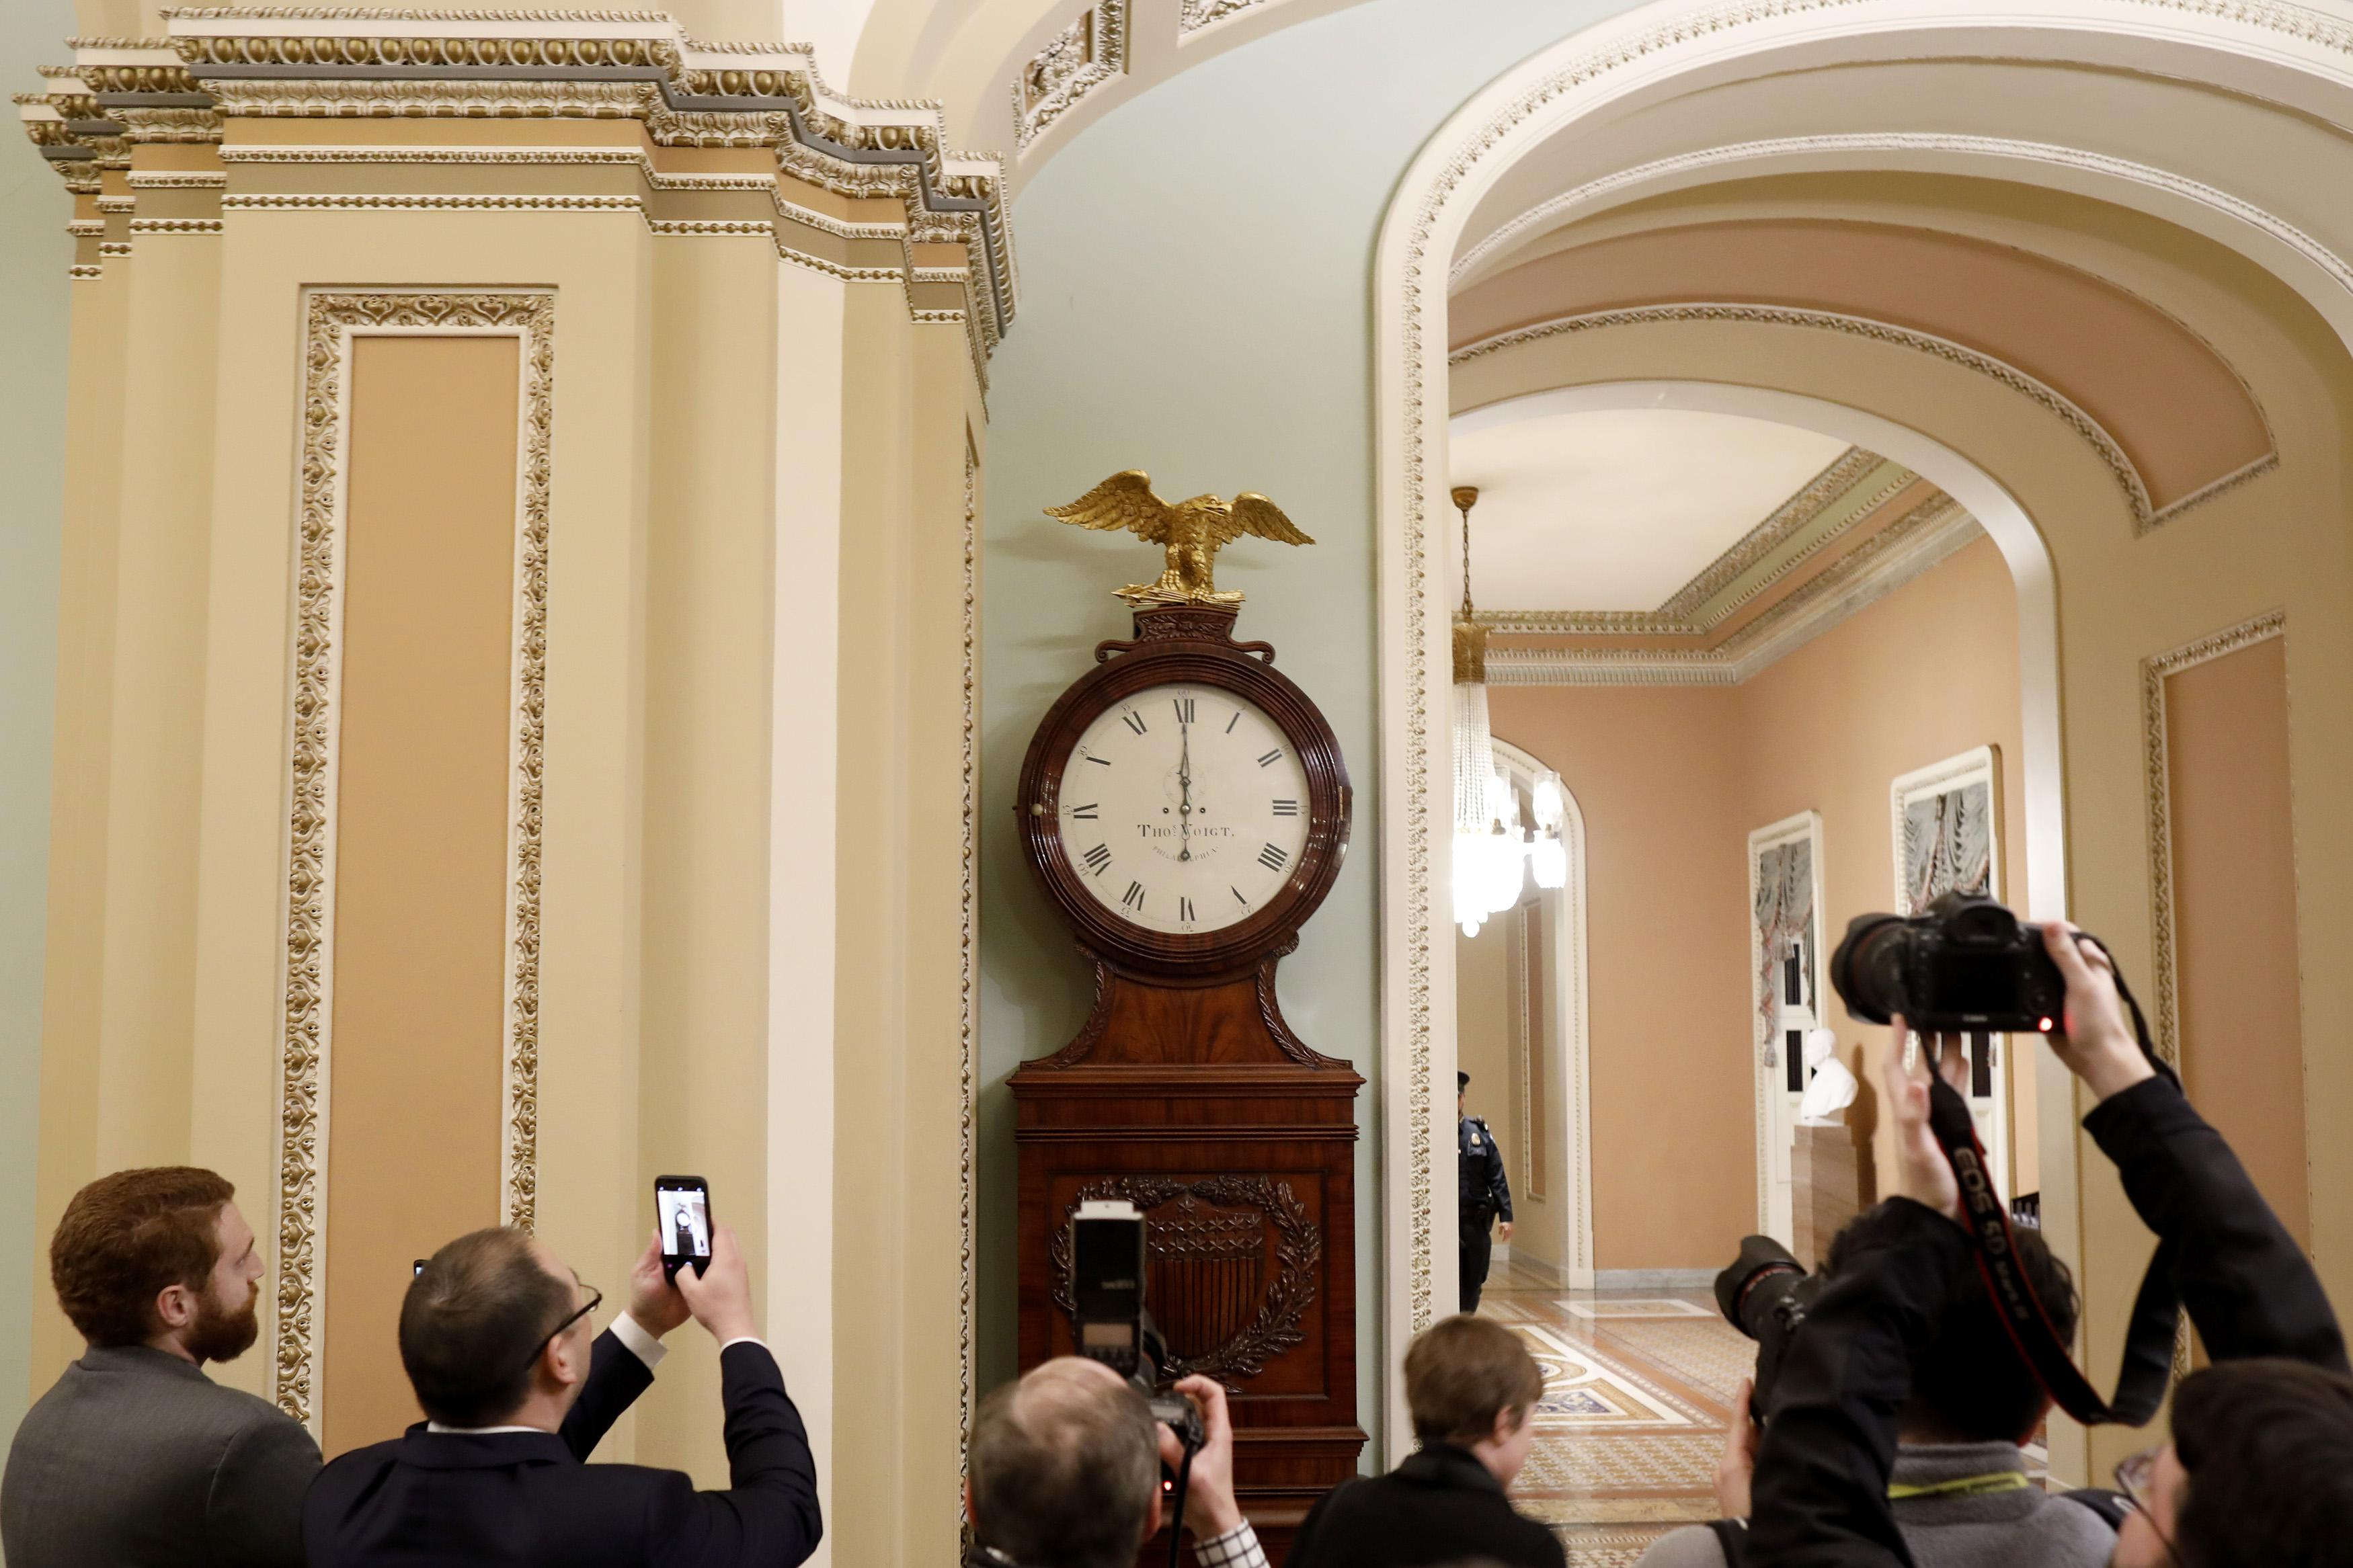 The Ohio Clock outside the Senate Chamber strikes midnight at the U.S. Capitol January 20, 2018 in Washington, DC. Lawmakers were unable to pass a continuing resolution in time to avert a government shutdown.